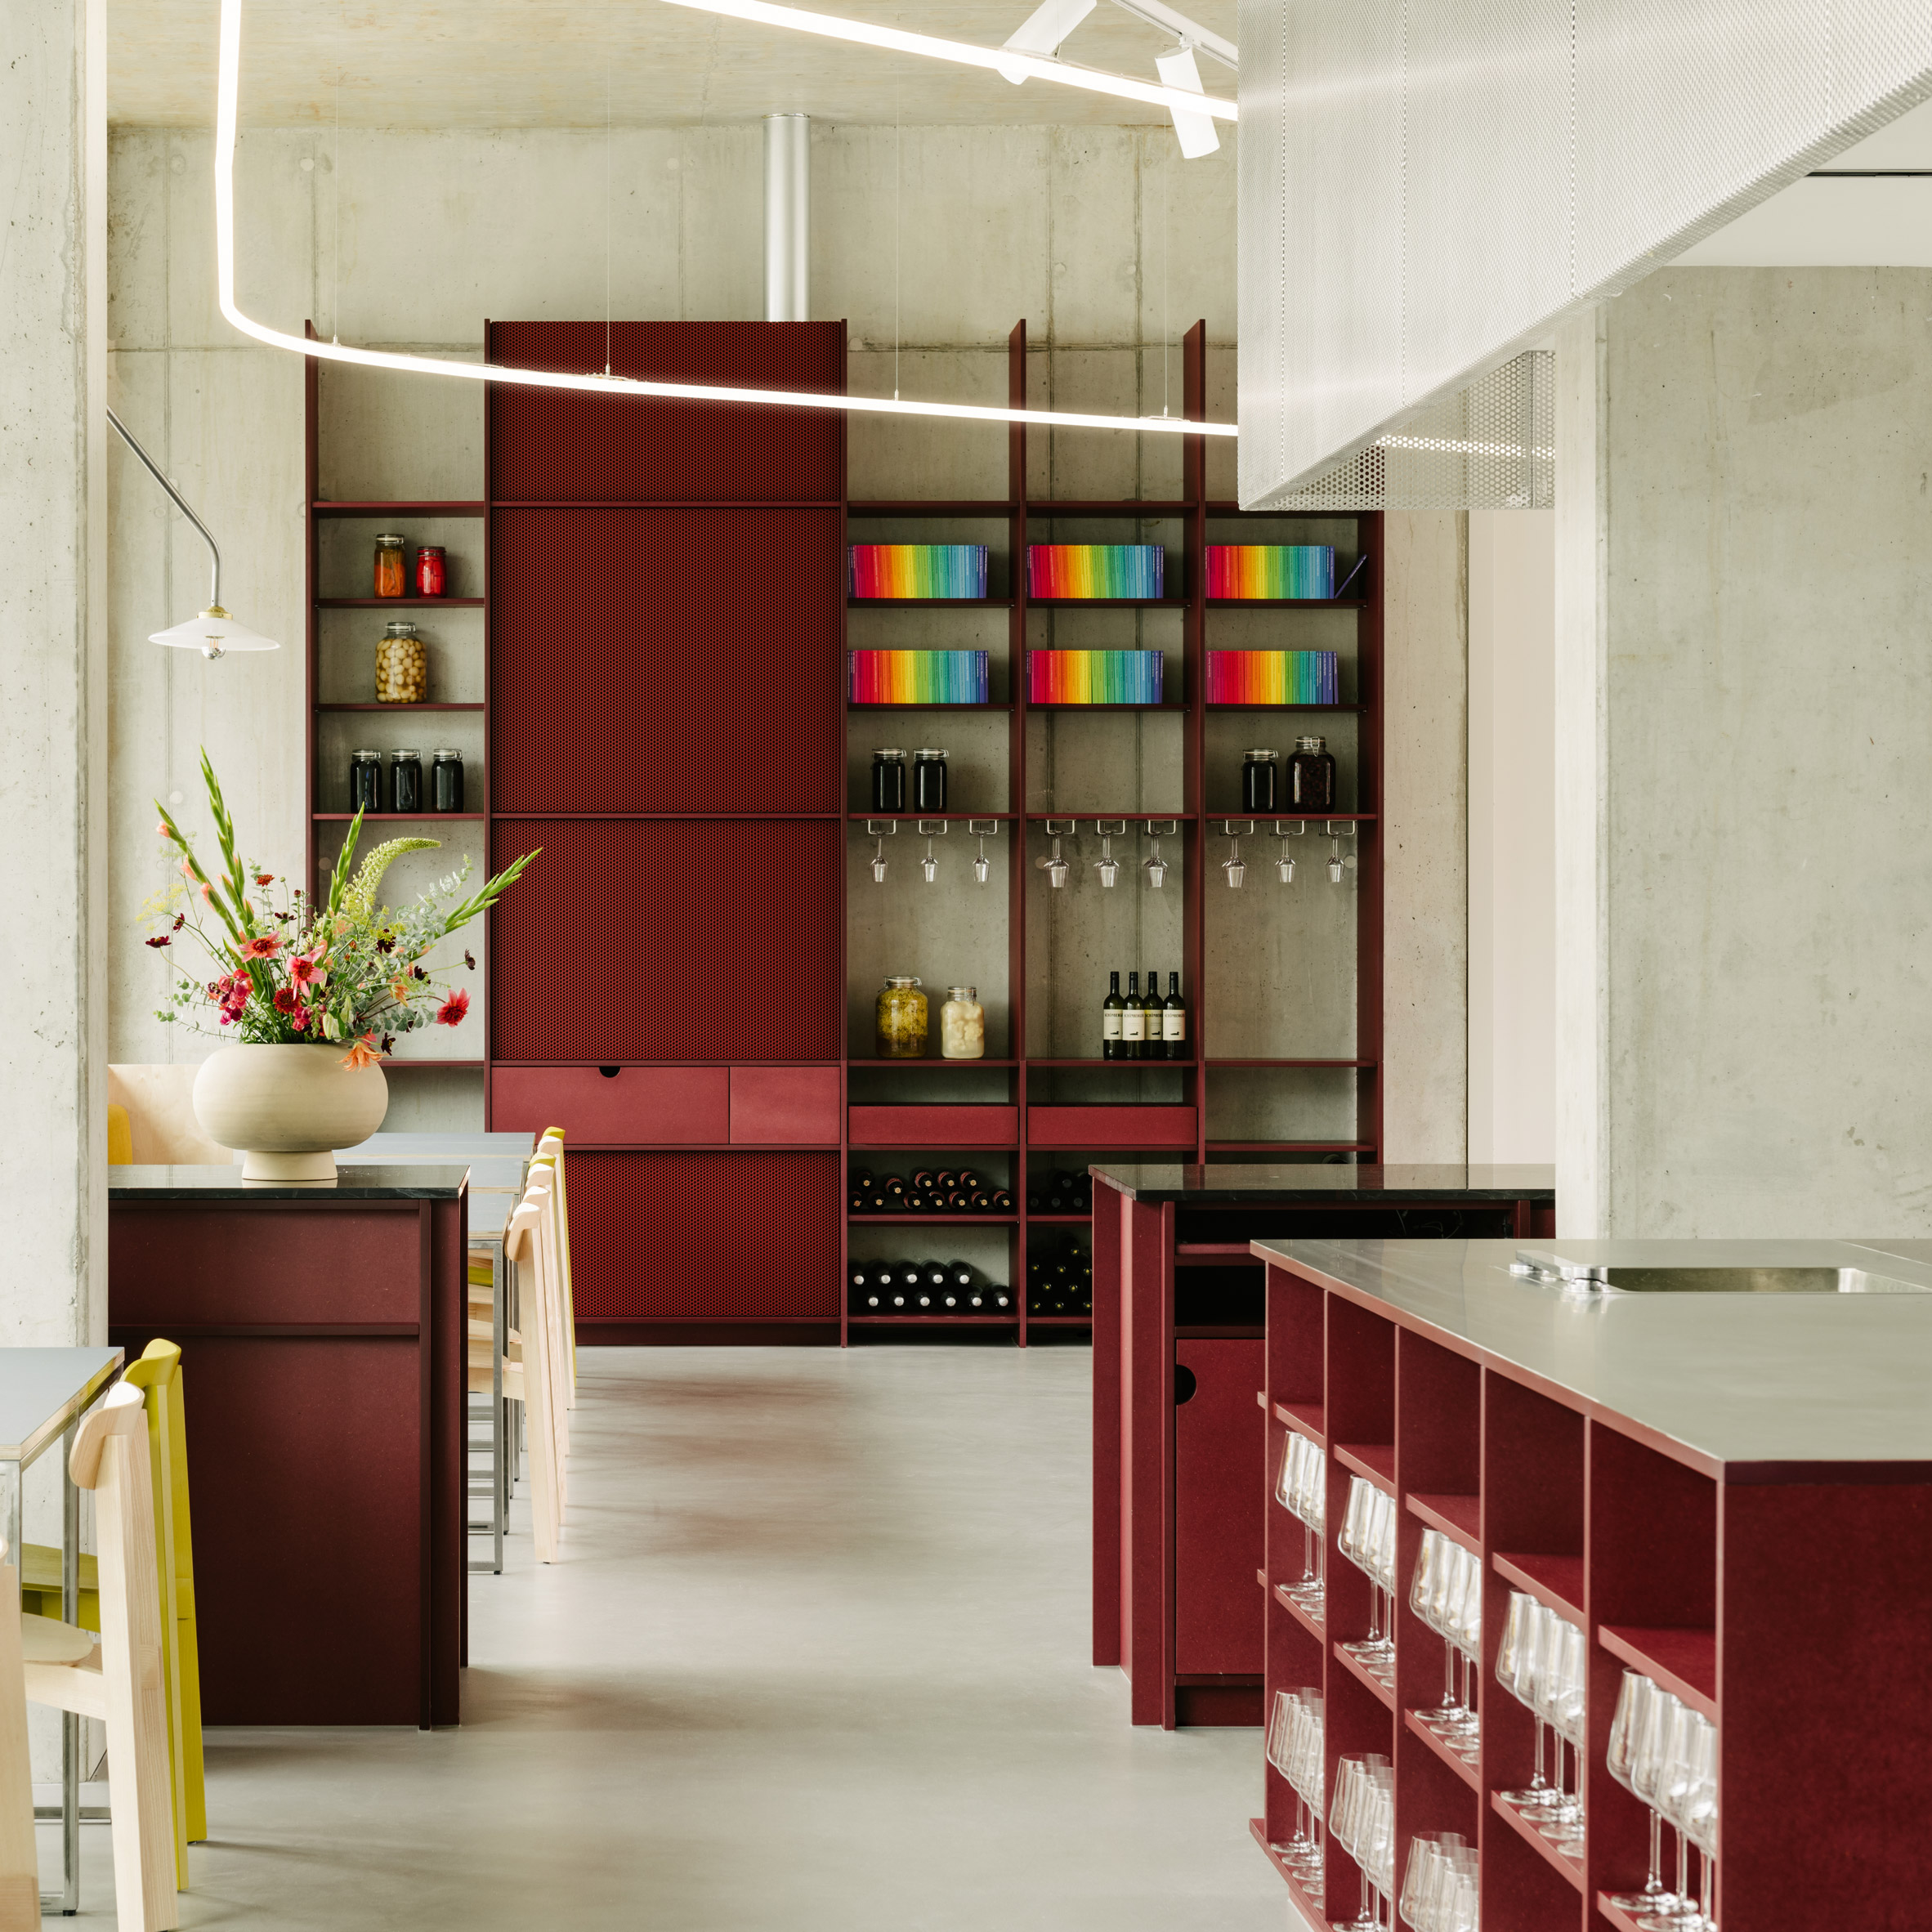 Remi Restaurant In Berlin Is Defined By Cherry Red Joinery